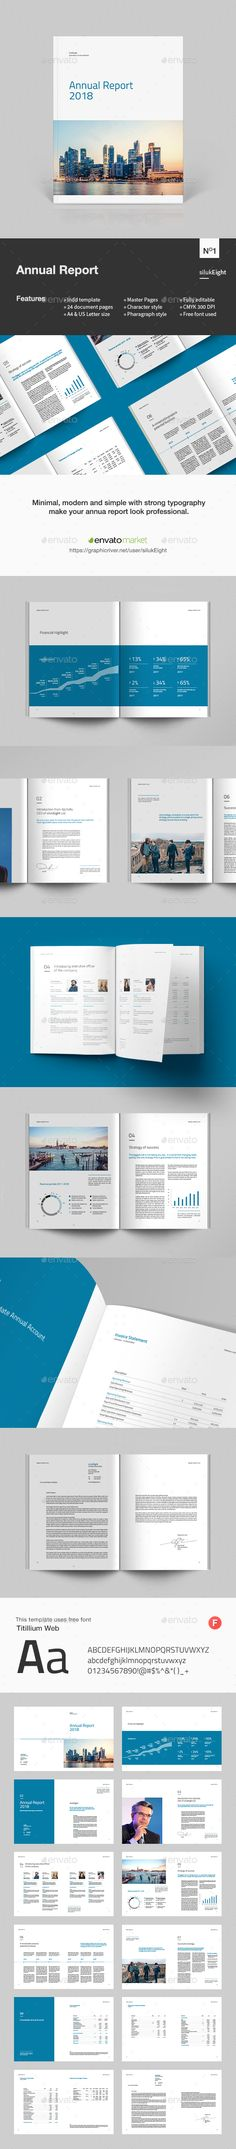 Annual Report Template Bundle  Annual Reports Adobe Indesign And